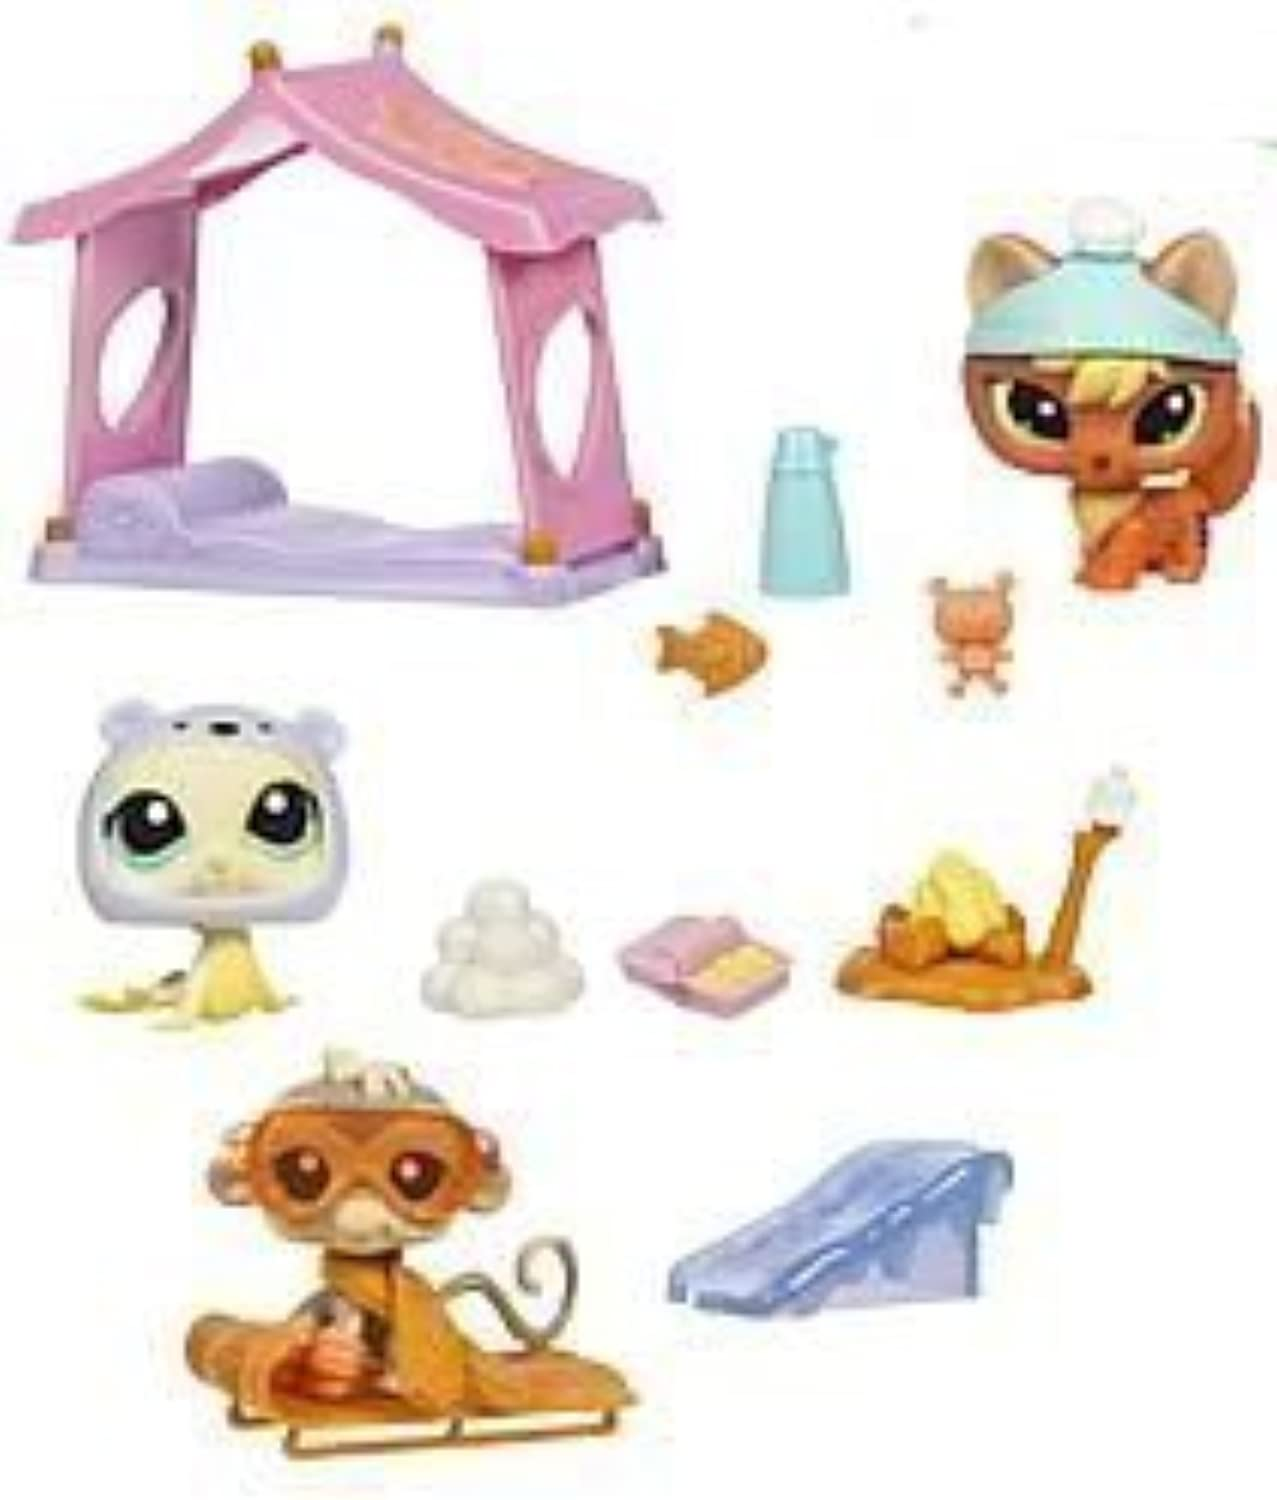 Littlest Pet Shop Themed Playpacks G3 - SNOW FUN by Littlest Pet Shop